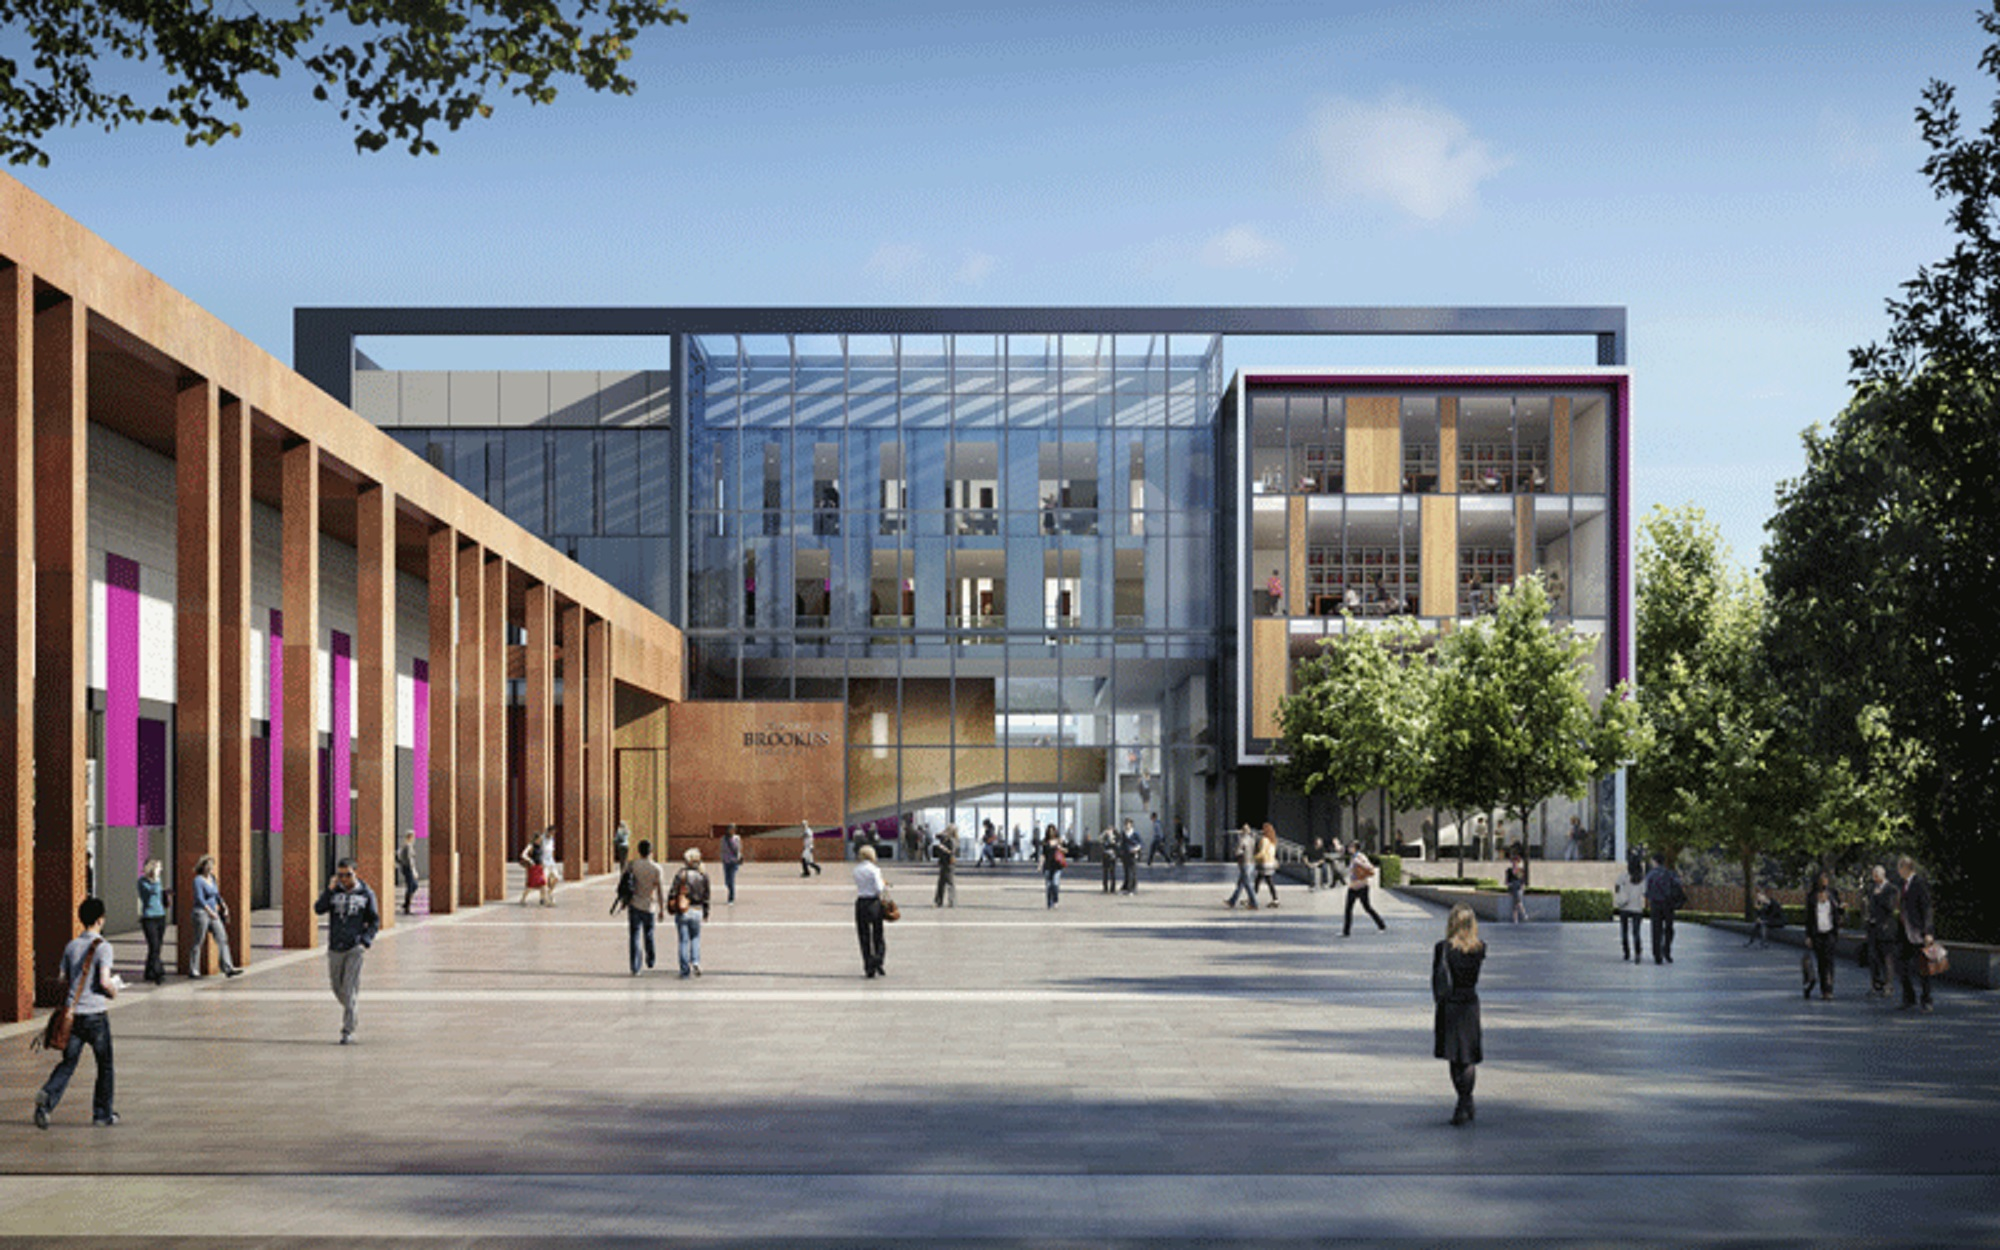 Oxford Brookes University Student Centre Rsa Geotechnics